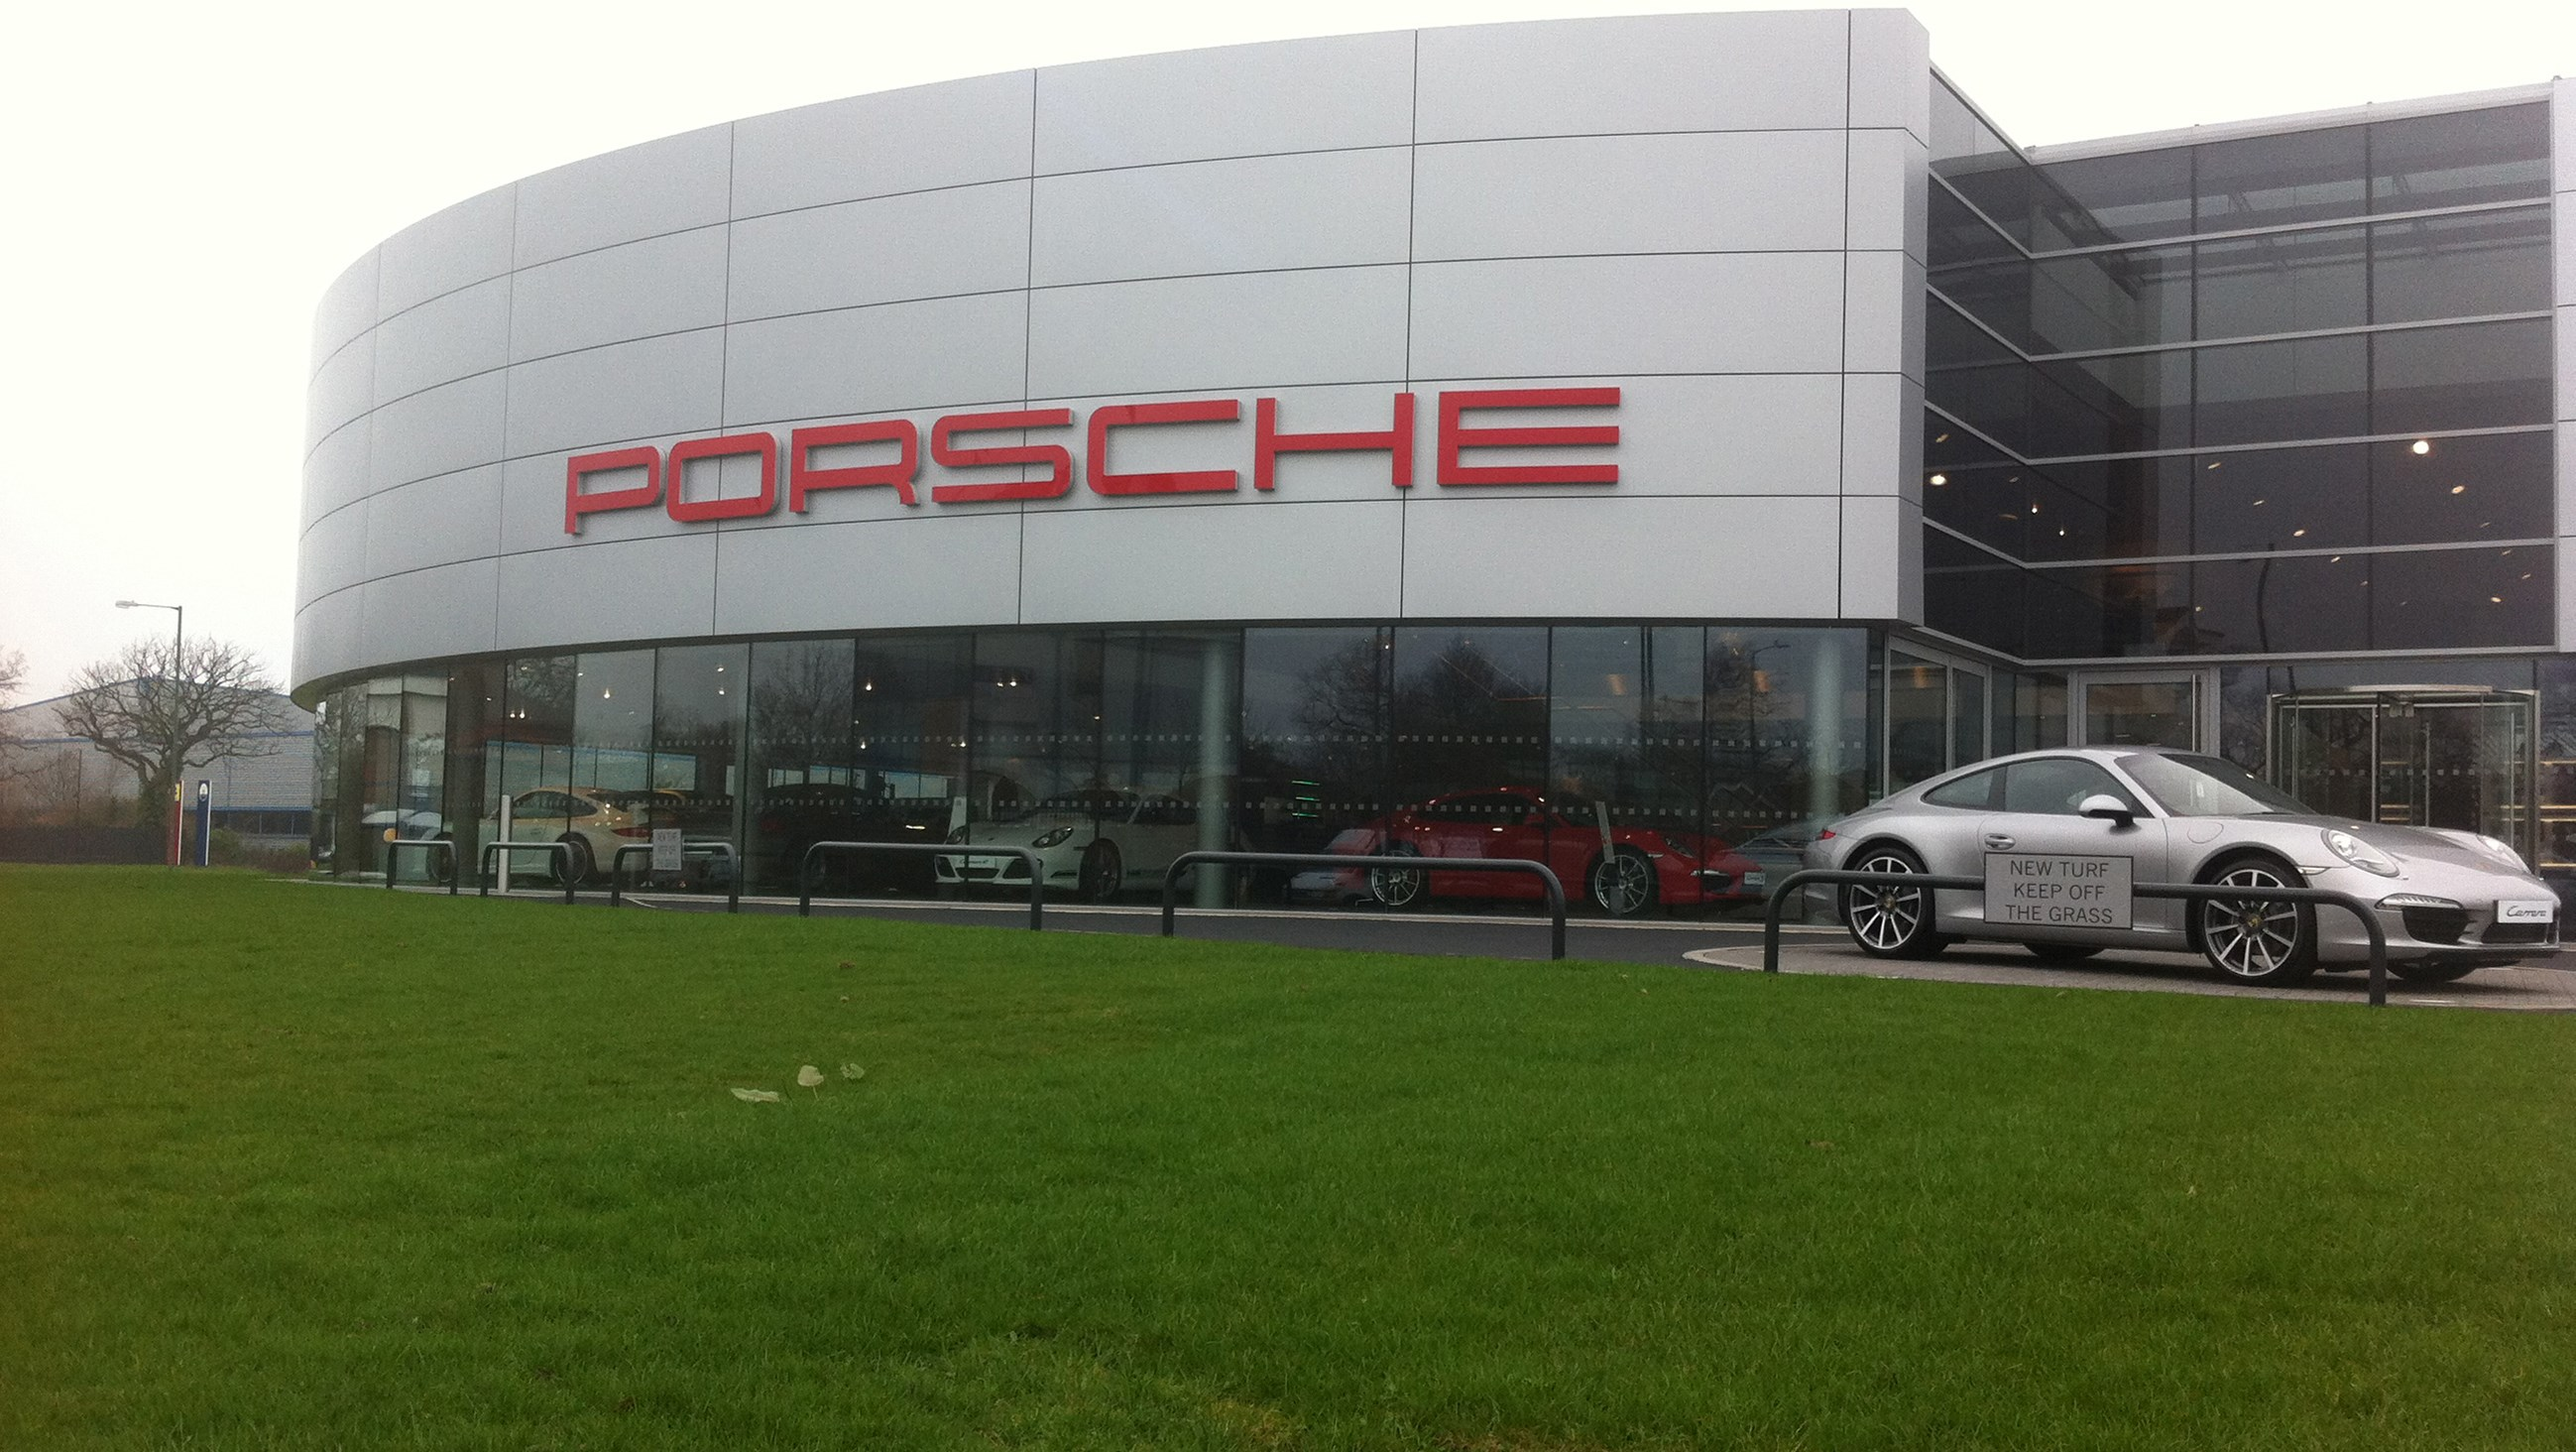 Porsche, Solihull gallery image